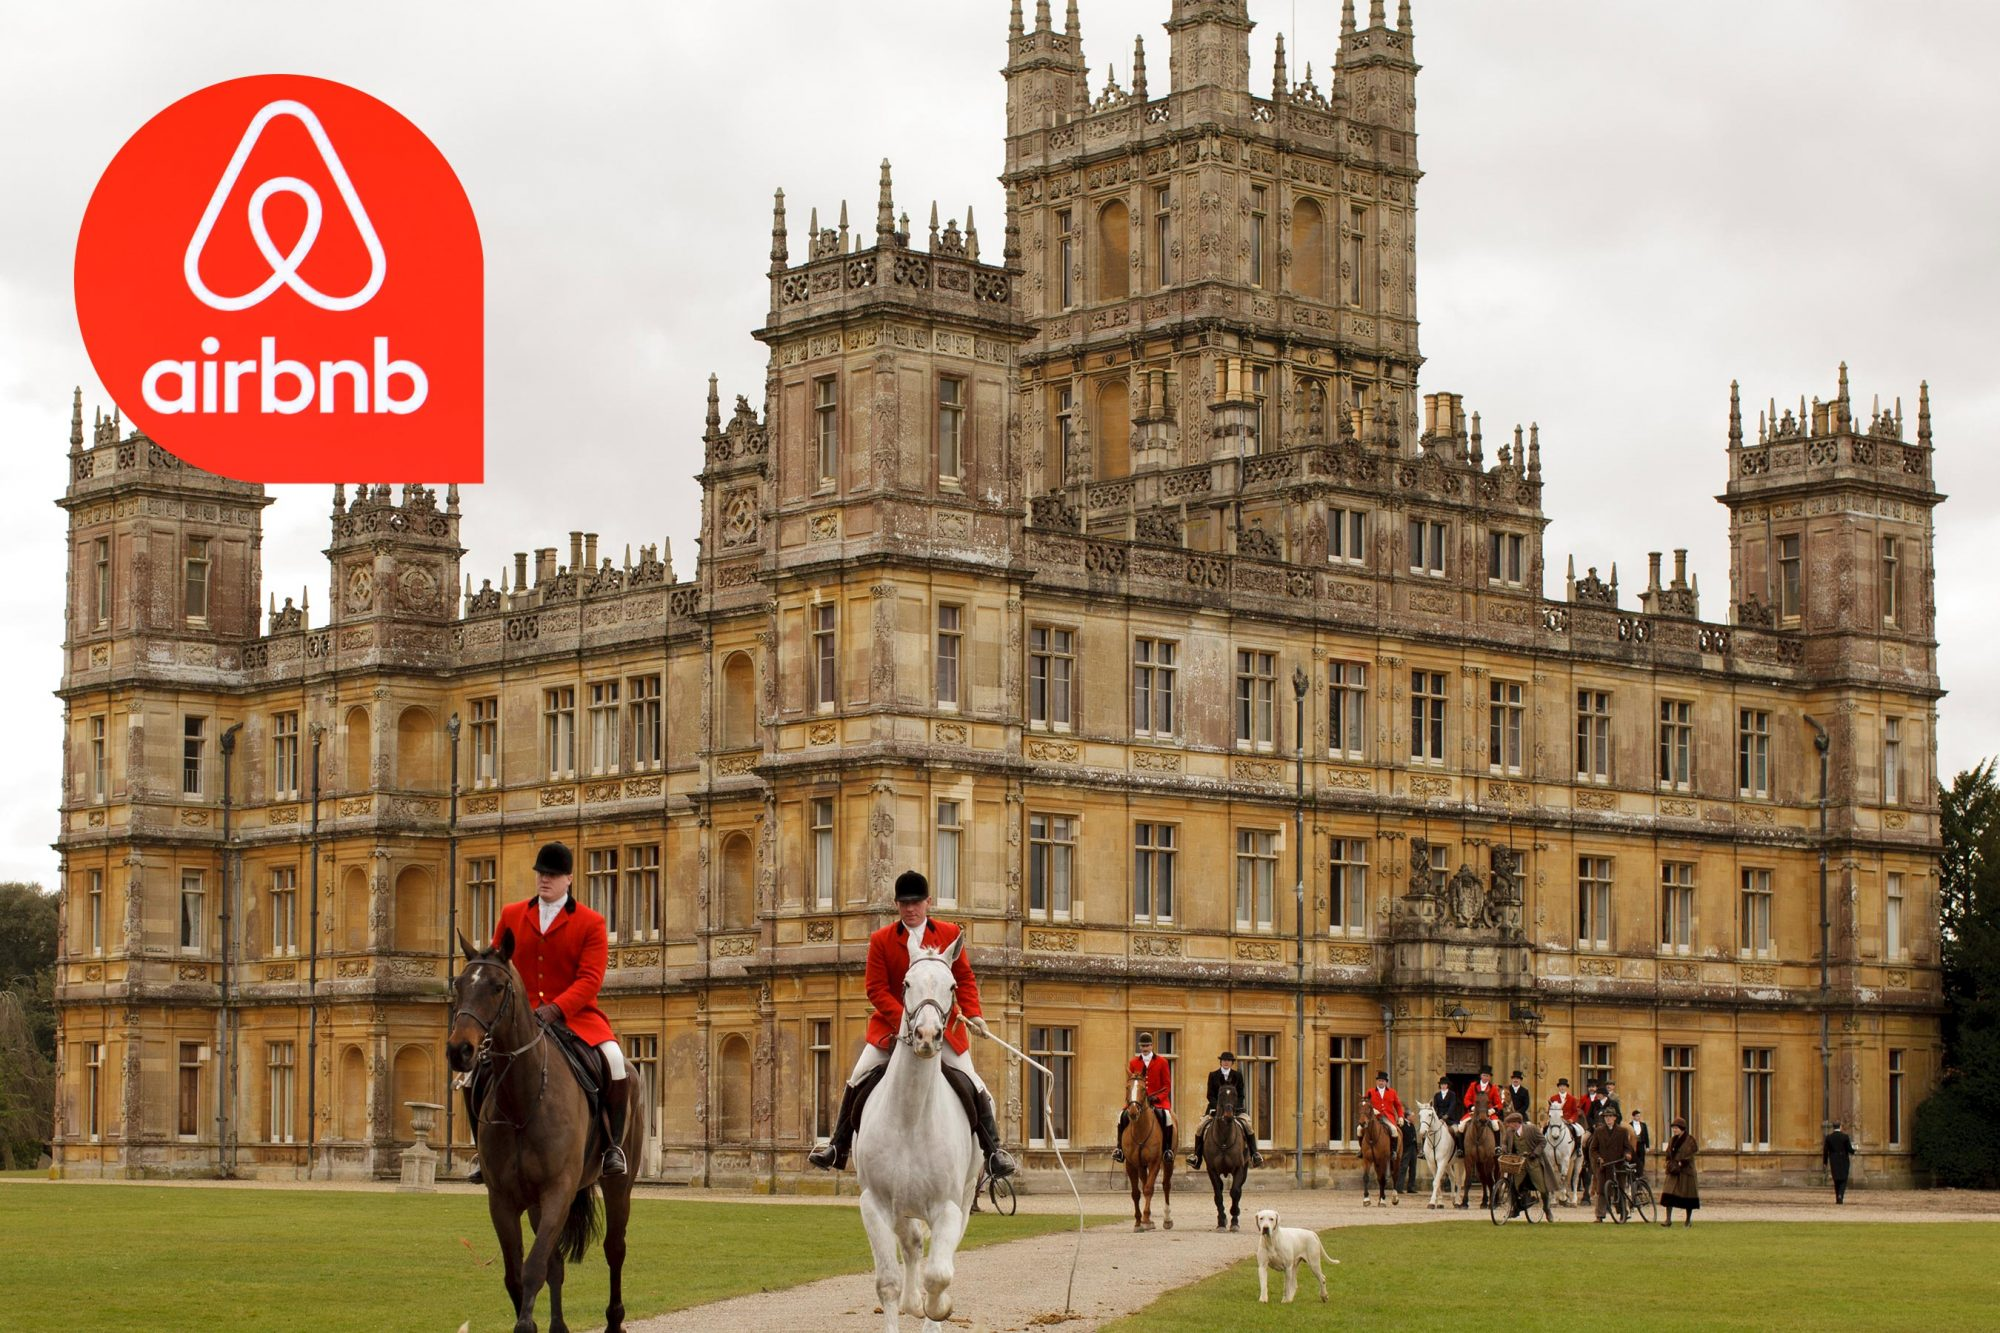 Downton Abbey / Airbnb